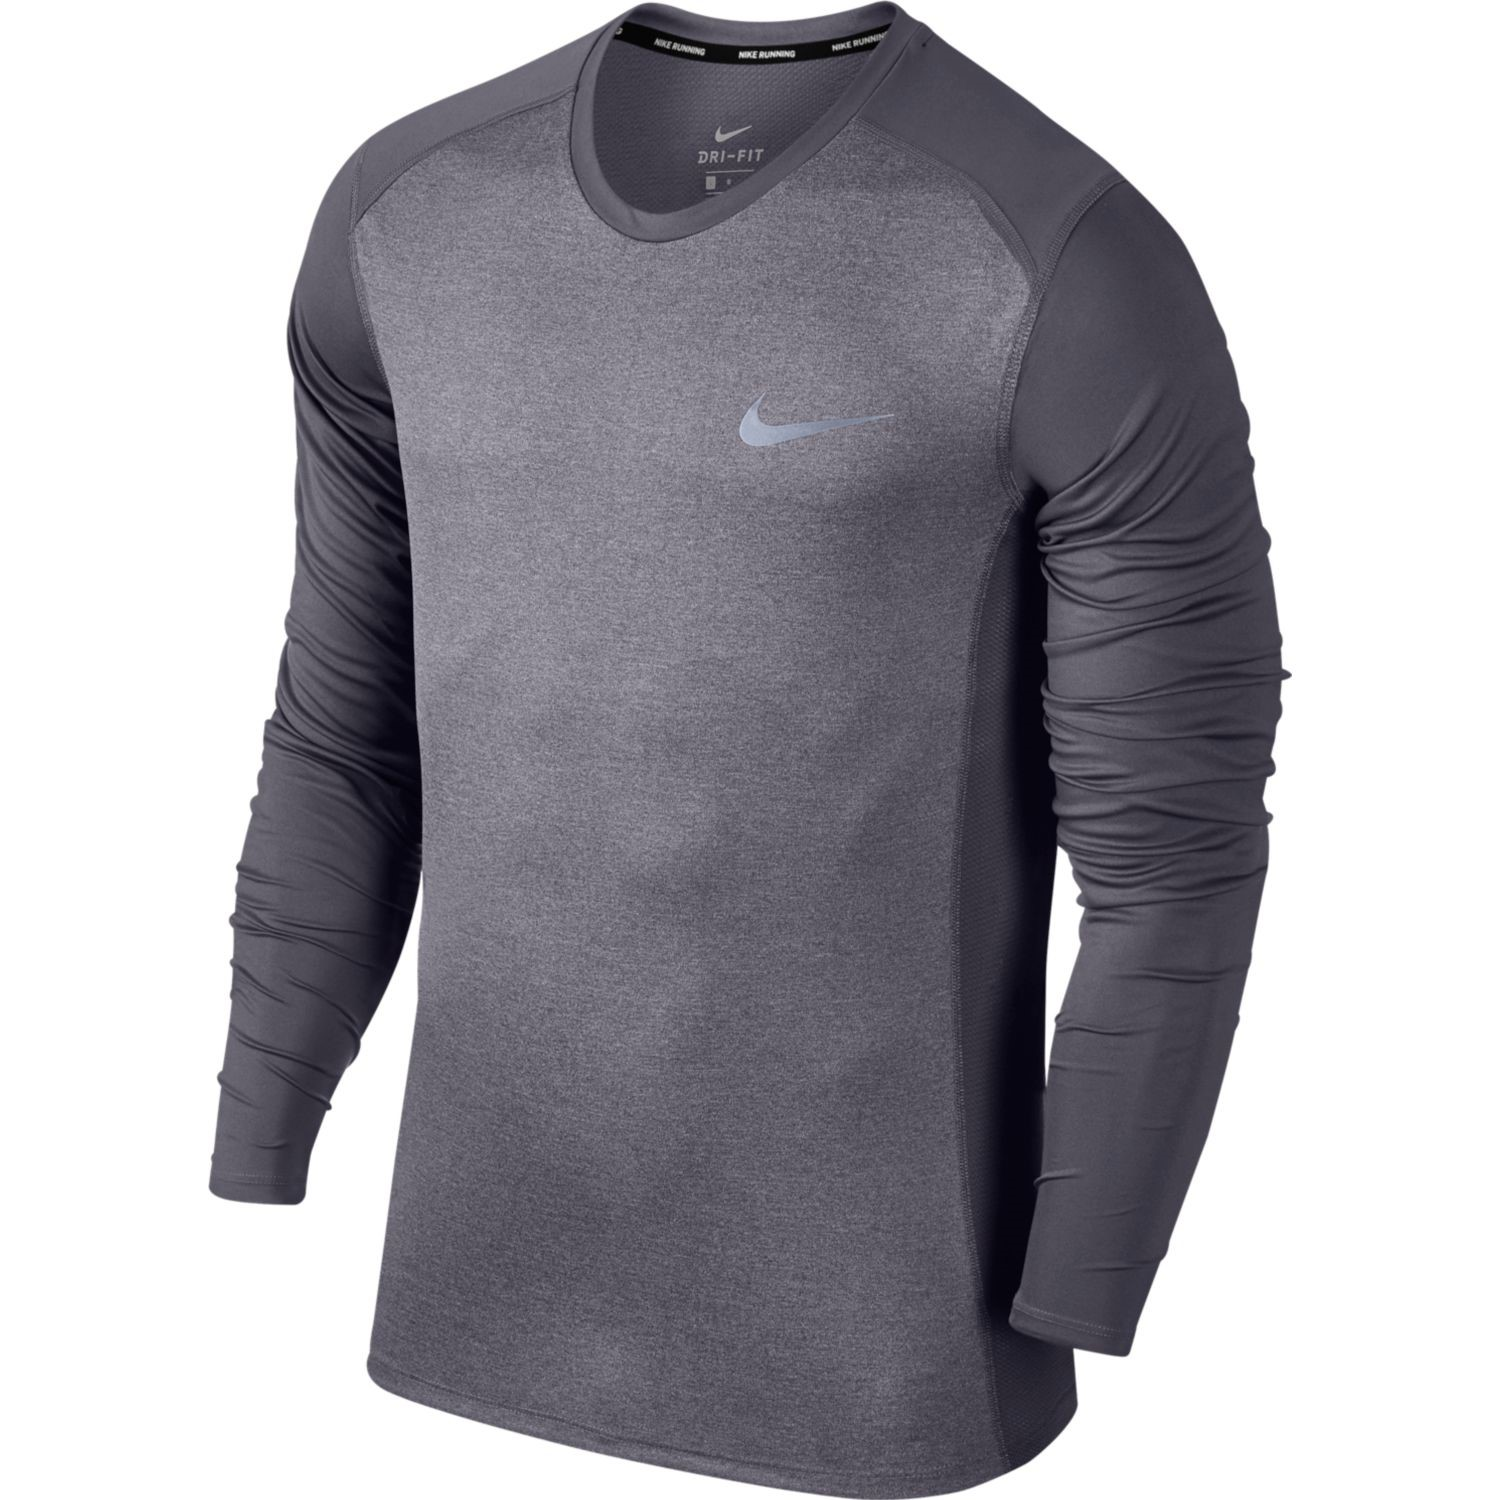 bd3bf8db Nike Dry Miler Mens Long Sleeve Running Top - Gridiron Grey/Heather ...